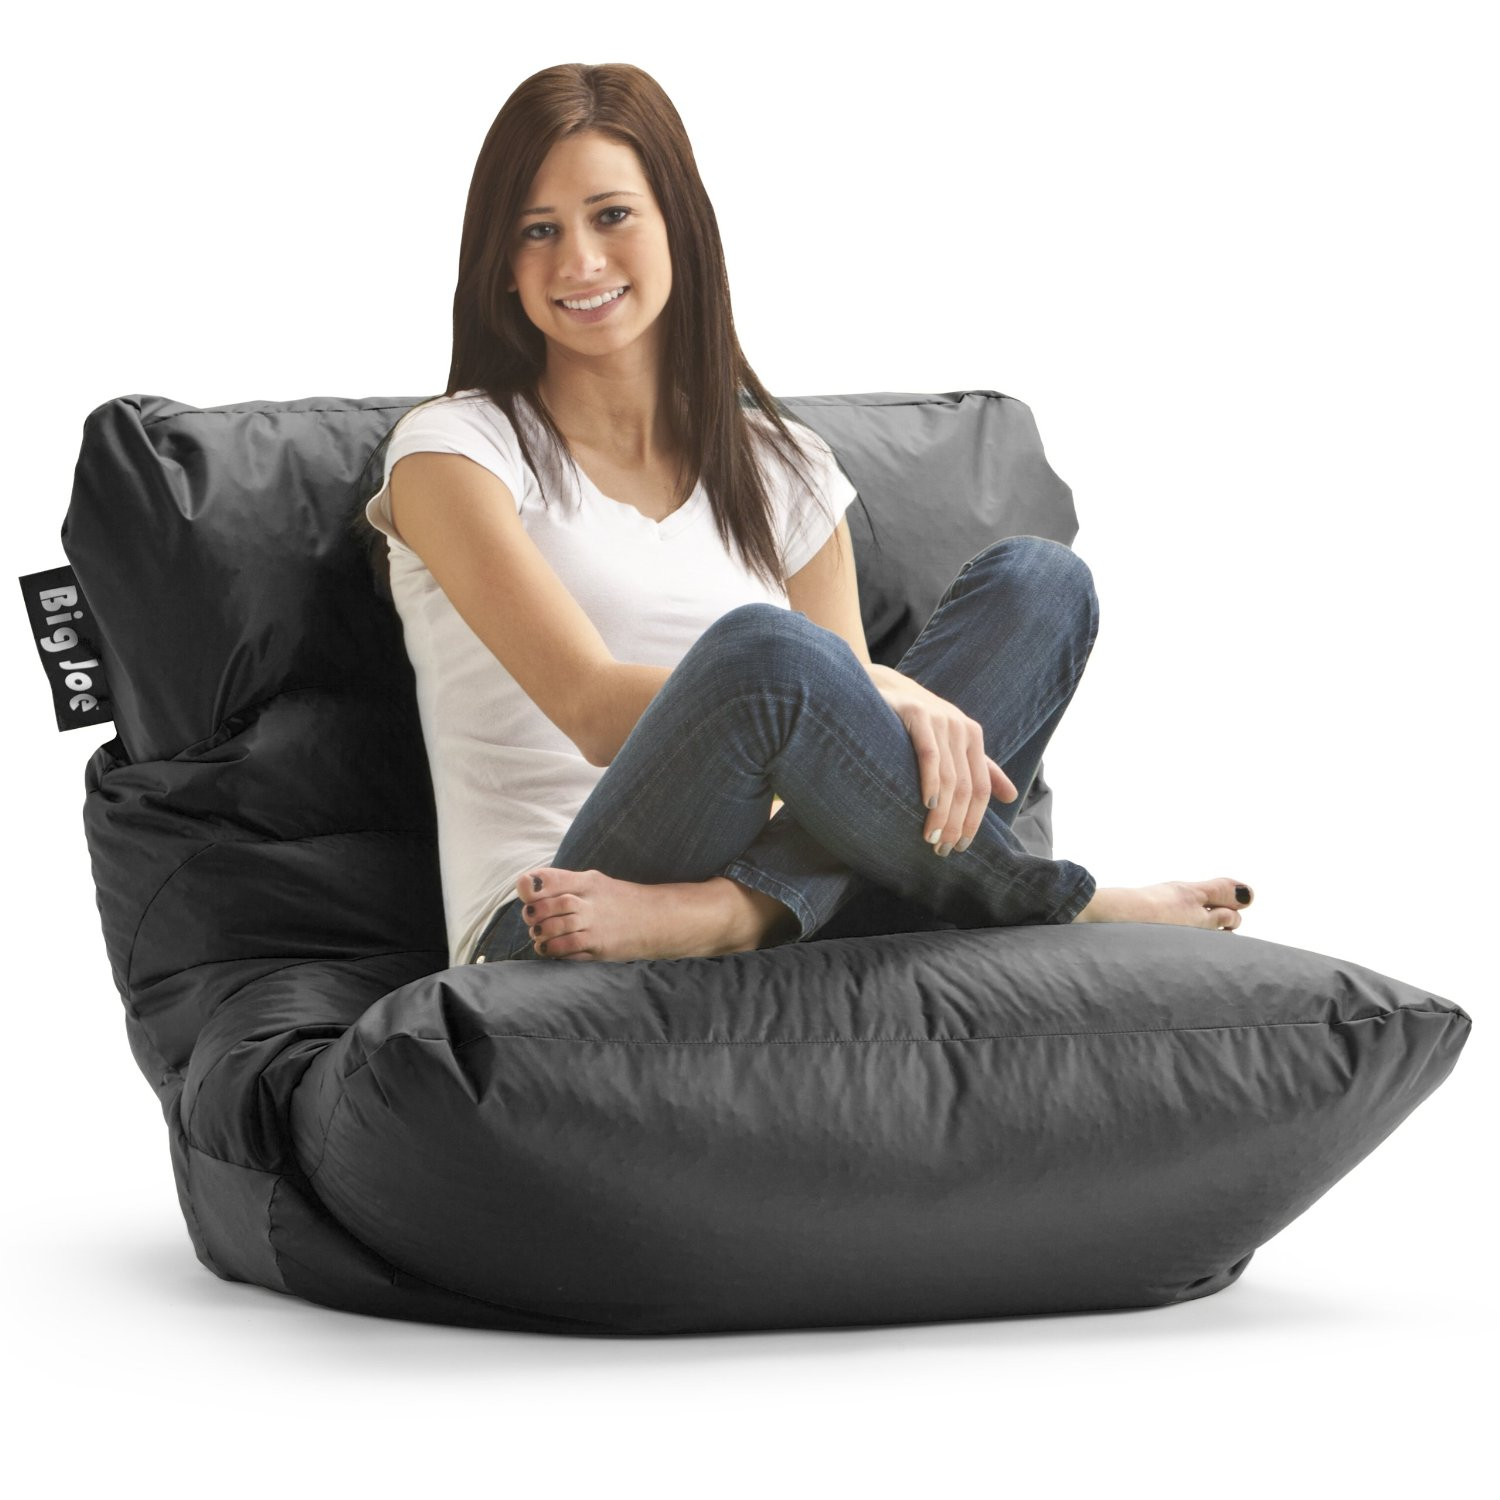 Furniture: Enhance Your Room Using Bean Bag Chairs For Adults ...